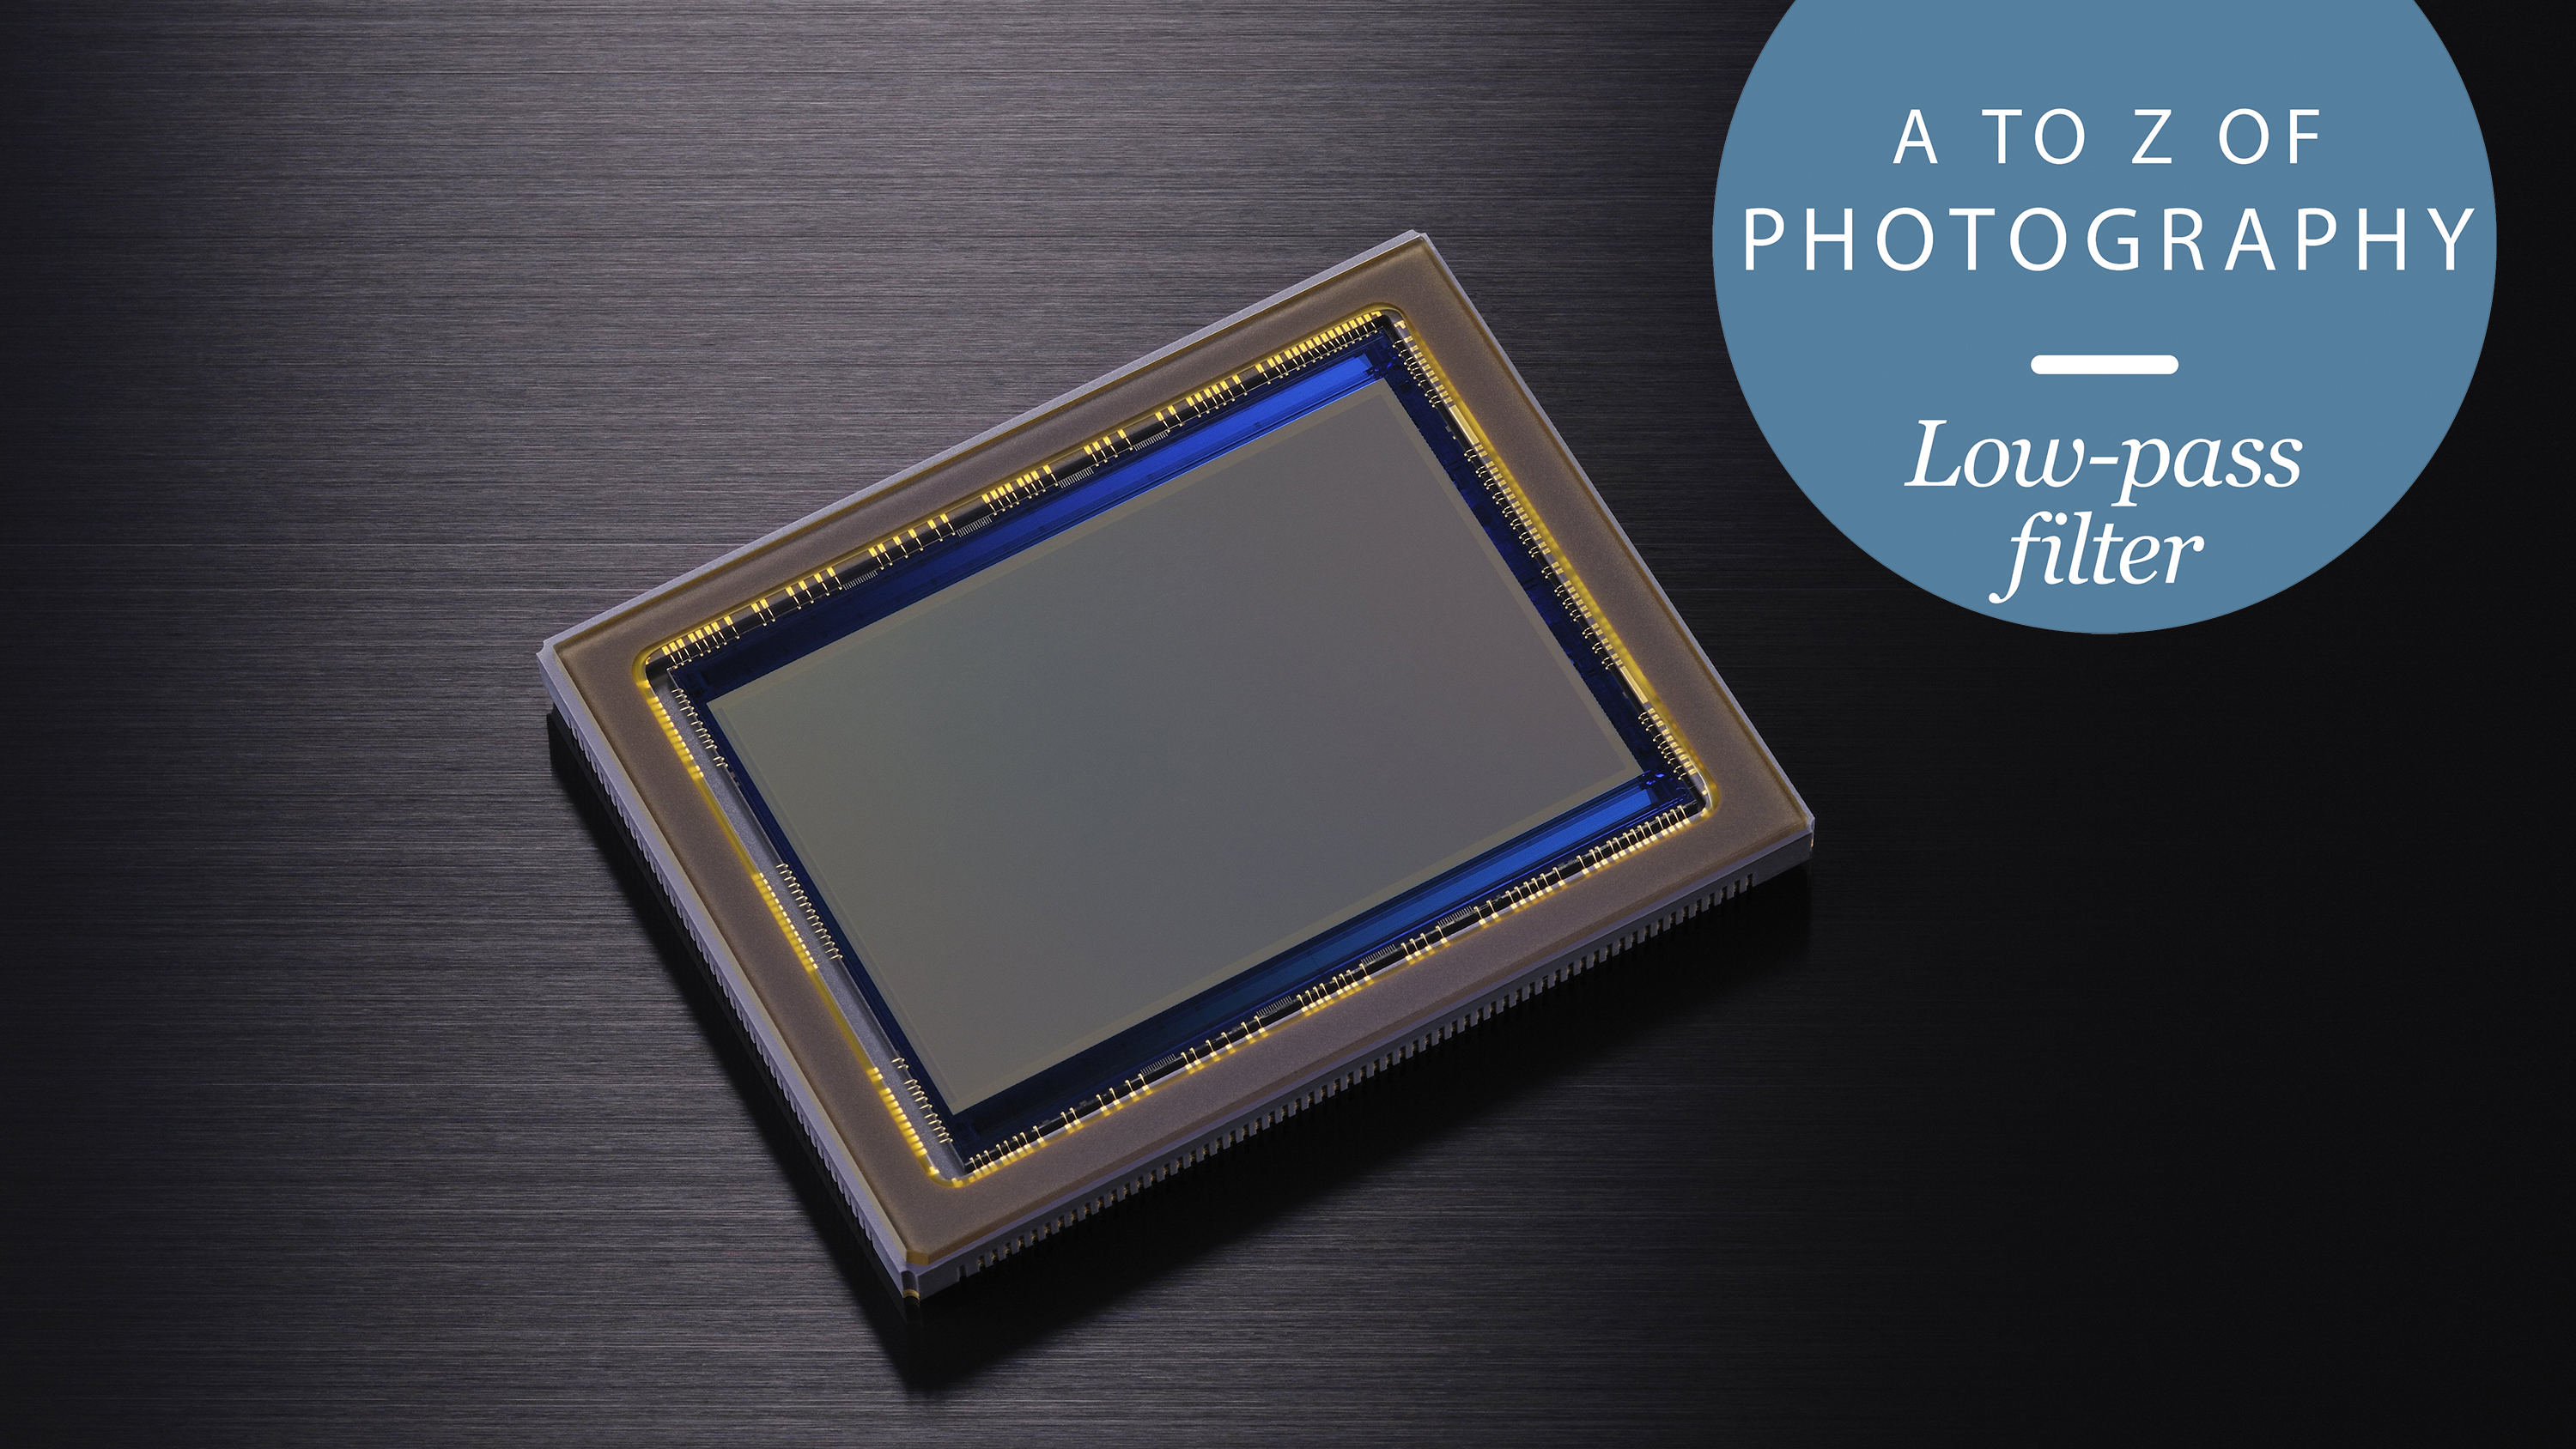 The A to Z of Photography: low-pass filter